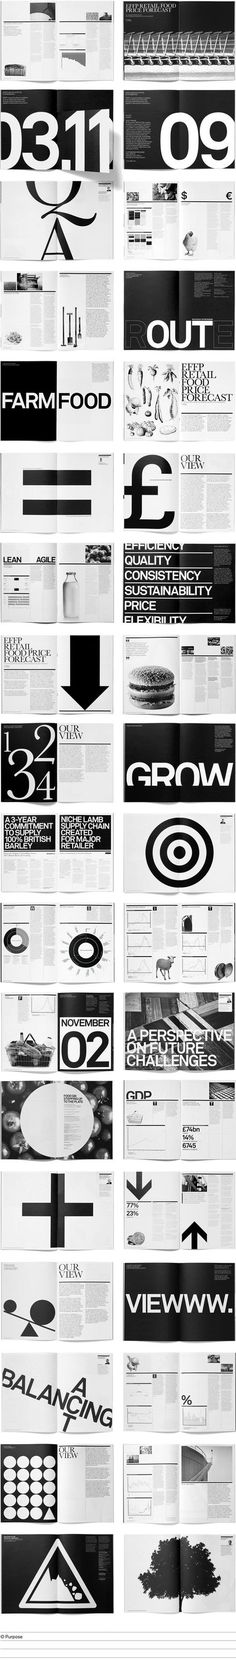 Lots of Black&White in the book as well as geometric elements.